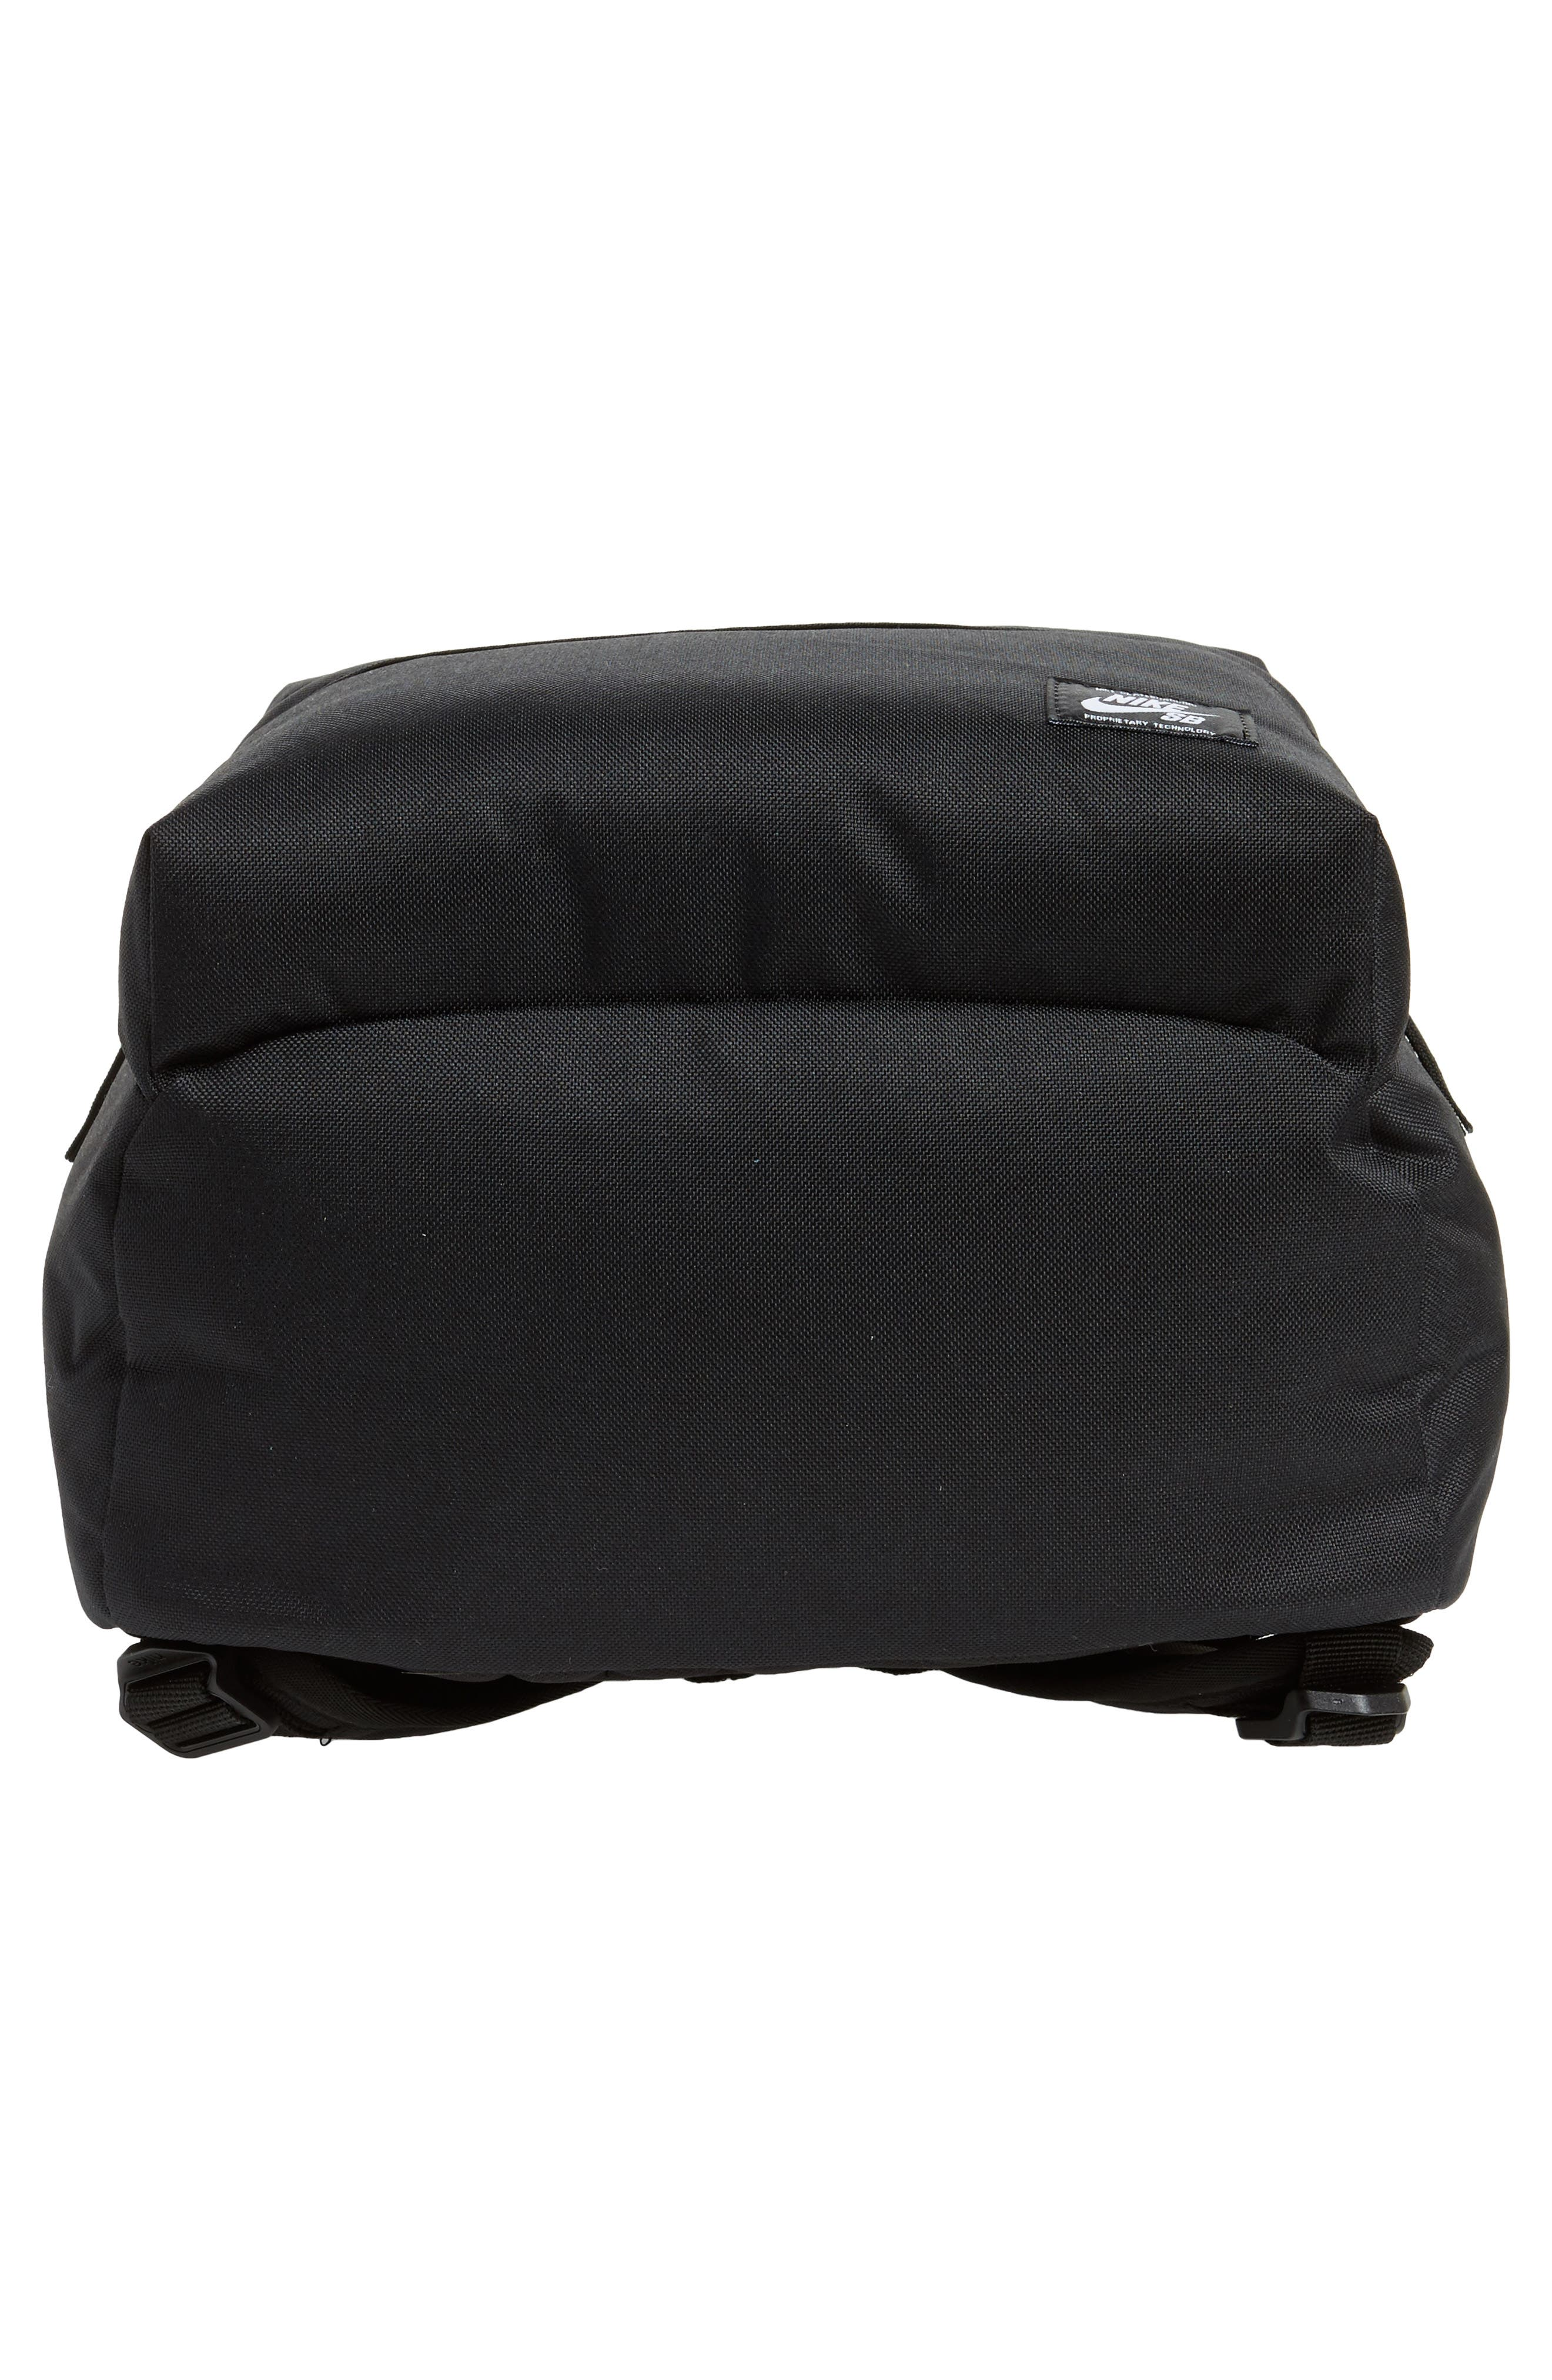 Icon Backpack,                             Alternate thumbnail 6, color,                             010